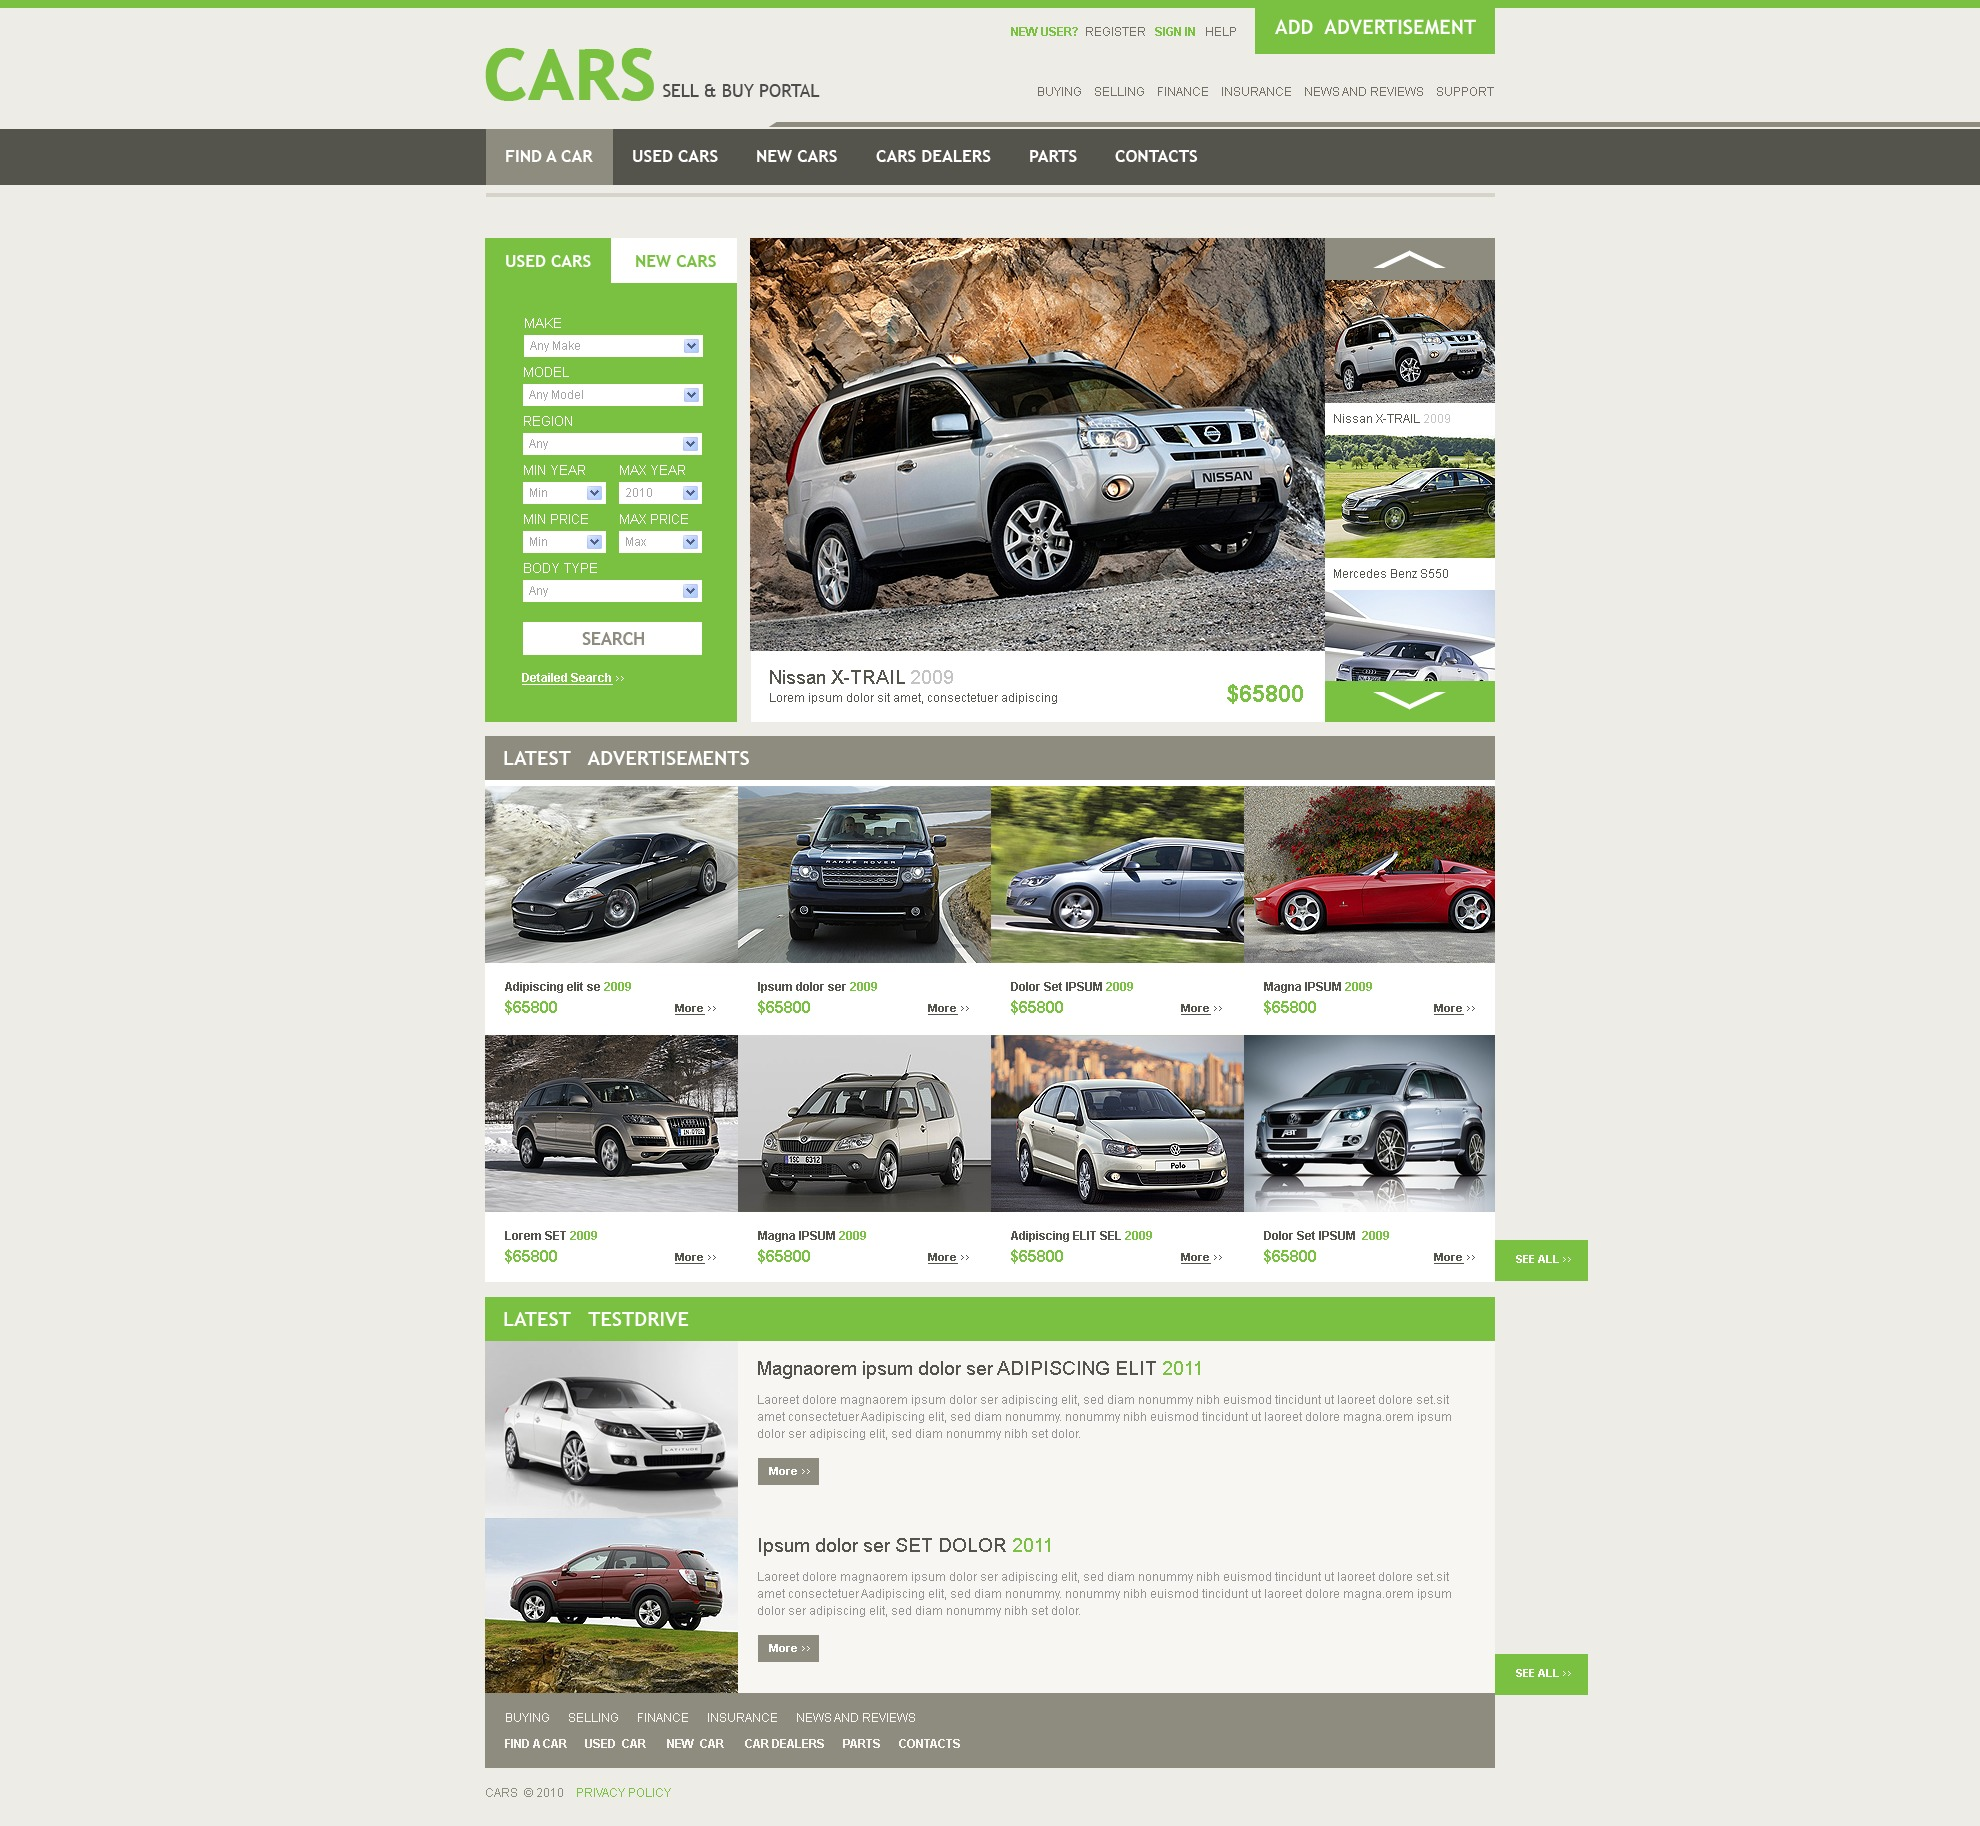 The Cars Portal PSD Design 54290, one of the best PSD templates of its kind (portal, cars, most popular, wide, jquery), also known as cars portal PSD template, auto PSD template, improvement PSD template, certified PSD template, exhibition solution PSD template, market PSD template, research PSD template, vendor PSD template, motor PSD template, price PSD template, Lexus transport PSD template, speed PSD template, jeep PSD template, ford PSD template, Audi Volvo Mercedes driving PSD template, off-road PSD template, racing PSD template, driver PSD template, track PSD template, race PSD template, urban PSD template, freeway PSD template, highway PSD template, road PSD template, vehicle PSD template, Porsche BMW spar PSD template, sell PSD template, o and related with cars portal, auto, improvement, certified, exhibition solution, market, research, vendor, motor, price, Lexus transport, speed, jeep, ford, Audi Volvo Mercedes driving, off-road, racing, driver, track, race, urban, freeway, highway, road, vehicle, Porsche BMW spar, sell, o, etc.